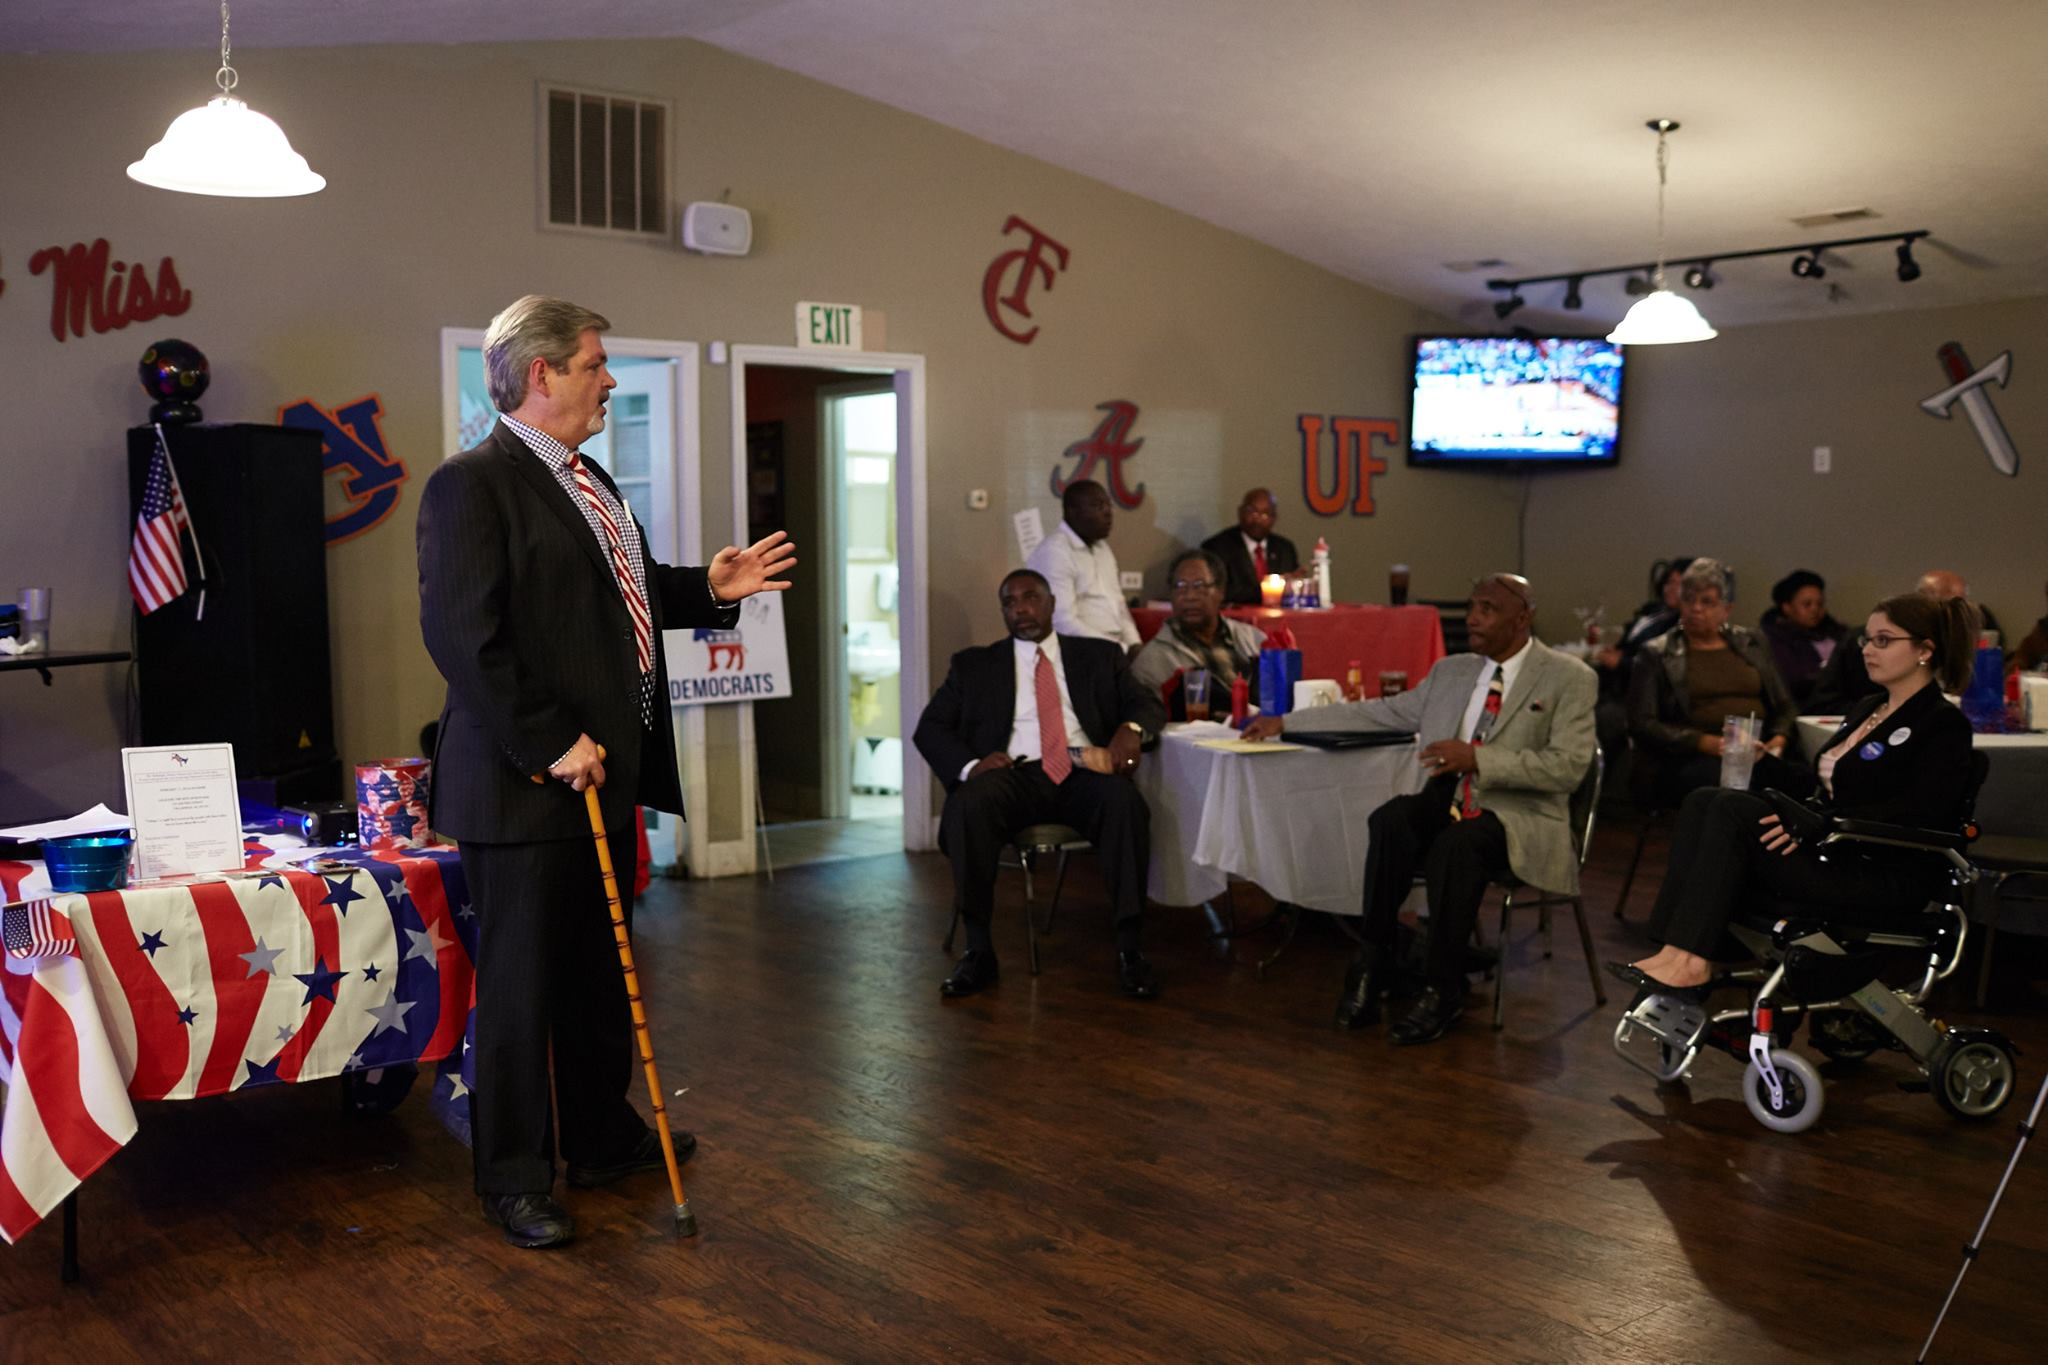 Ron Crumpton speaking at a campaign event. He is using a cane and there is a woman in a wheelchair in the audience.